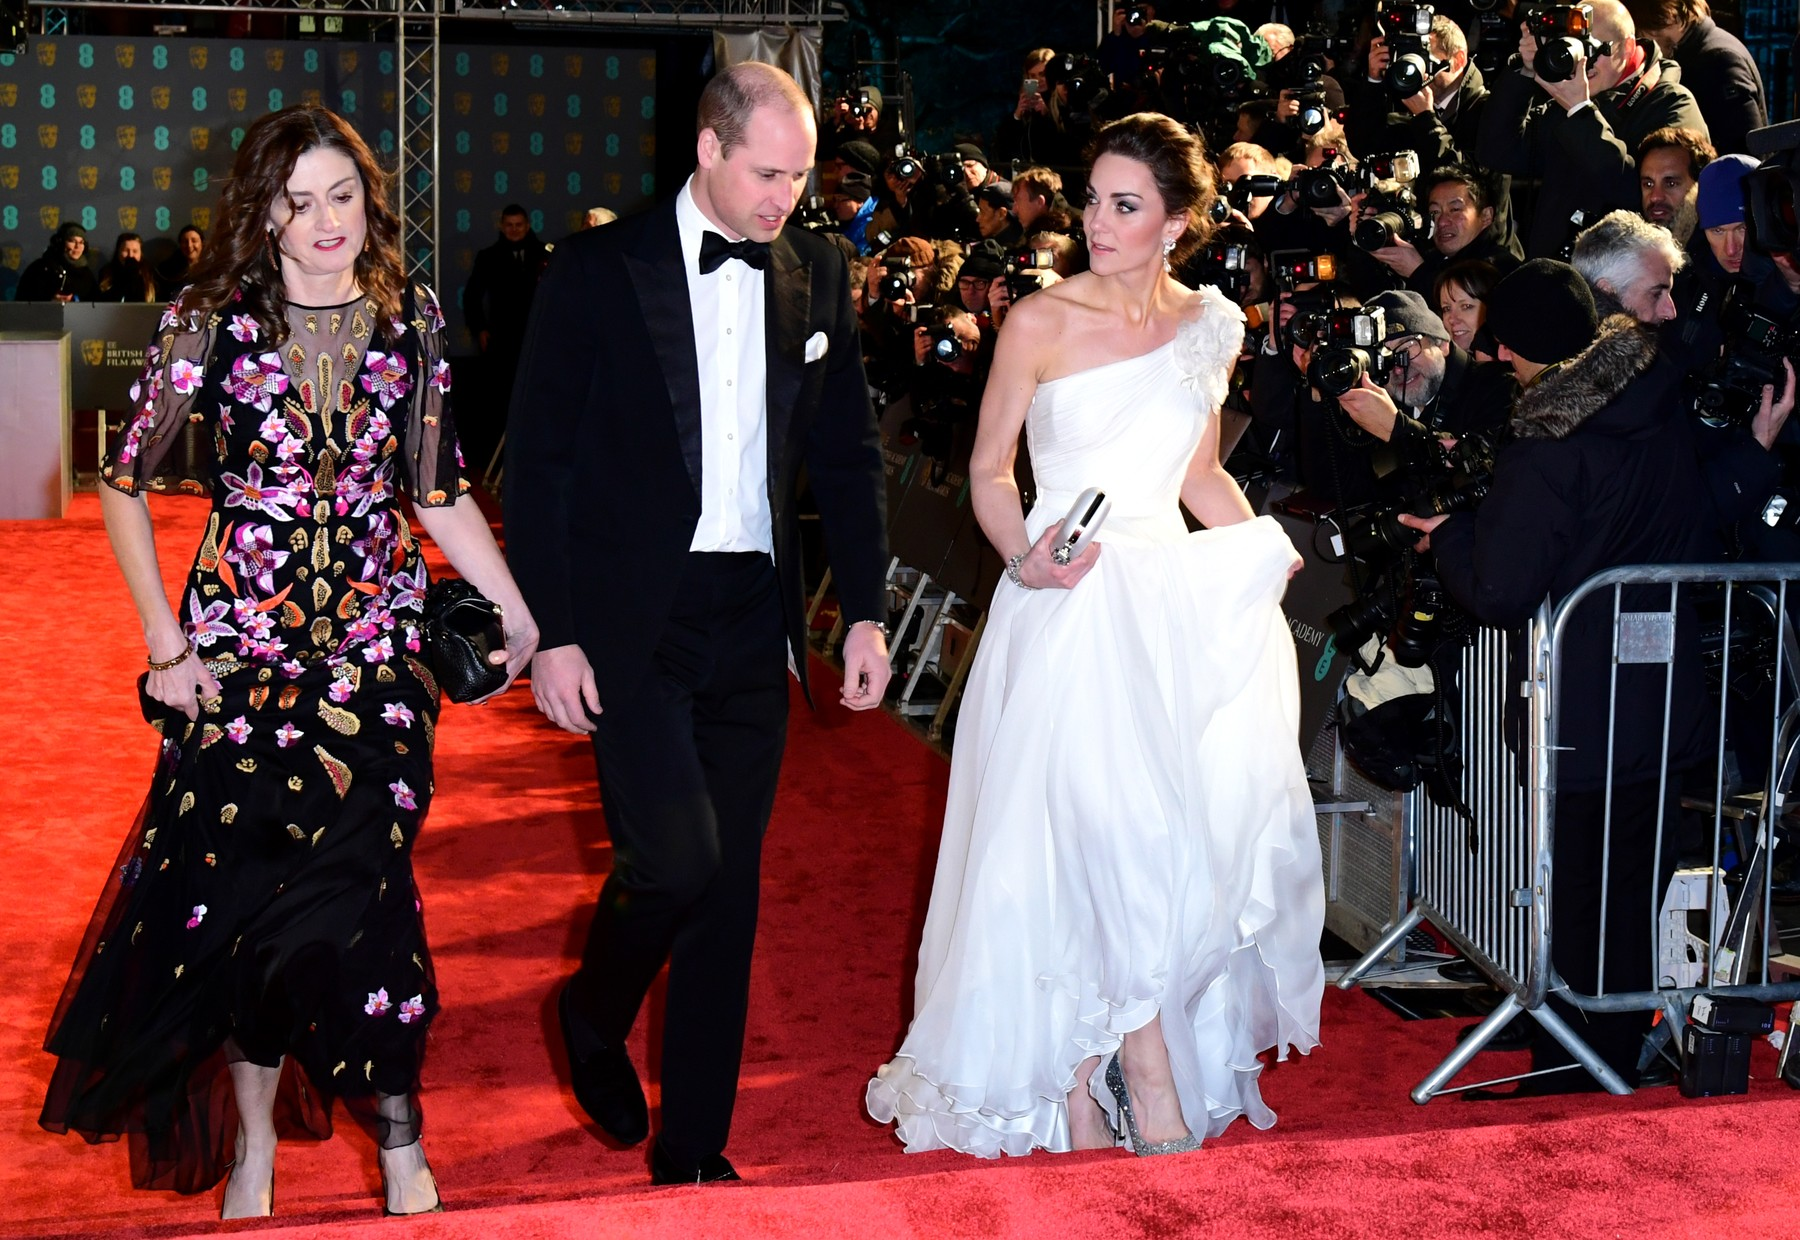 The Duke and Duchess of Cambridge attending the 72nd British Academy Film Awards held at the Royal Albert Hall, Kensington Gore, Kensington, London., Image: 413100774, License: Rights-managed, Restrictions: , Model Release: no, Credit line: Ian West / PA Images / Profimedia